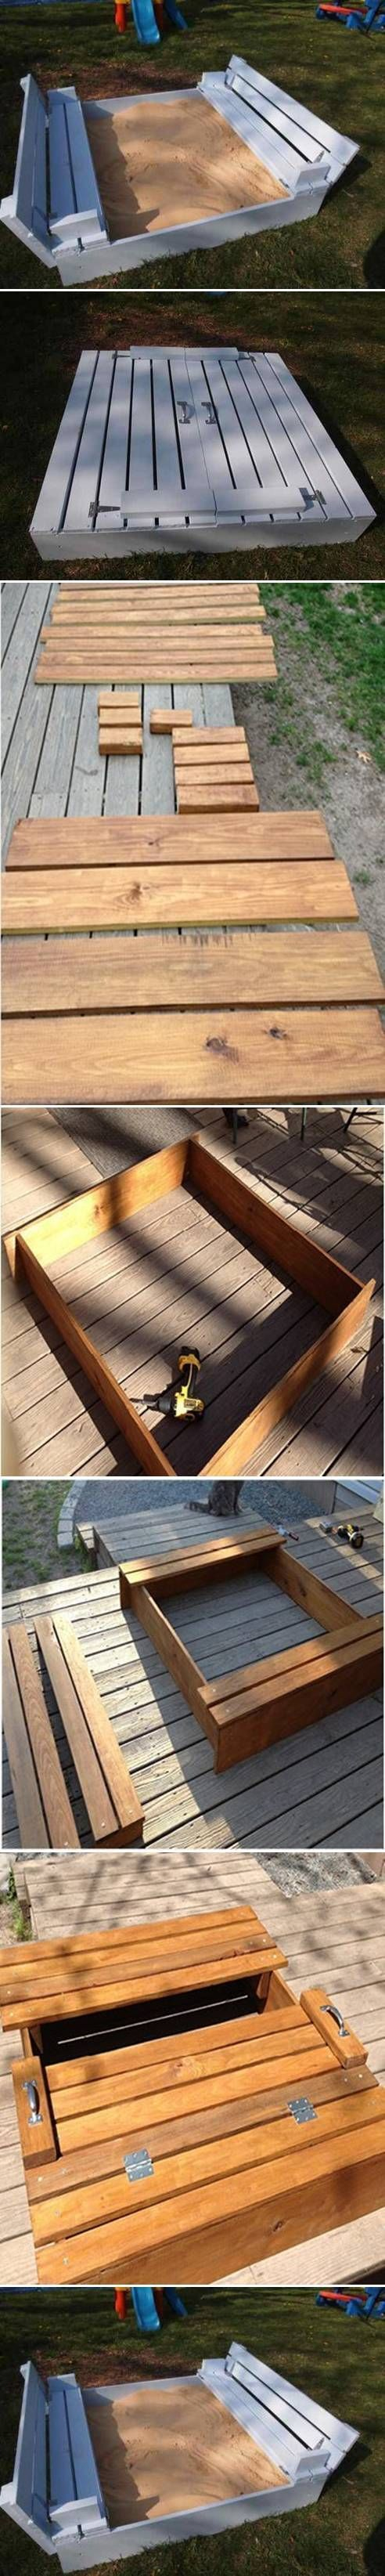 DIY Sandbox for Kids | iCreativeIdeas.com Like Us on Facebook ==> https://www.facebook.com/icreativeideas  www.amandafarwick.com